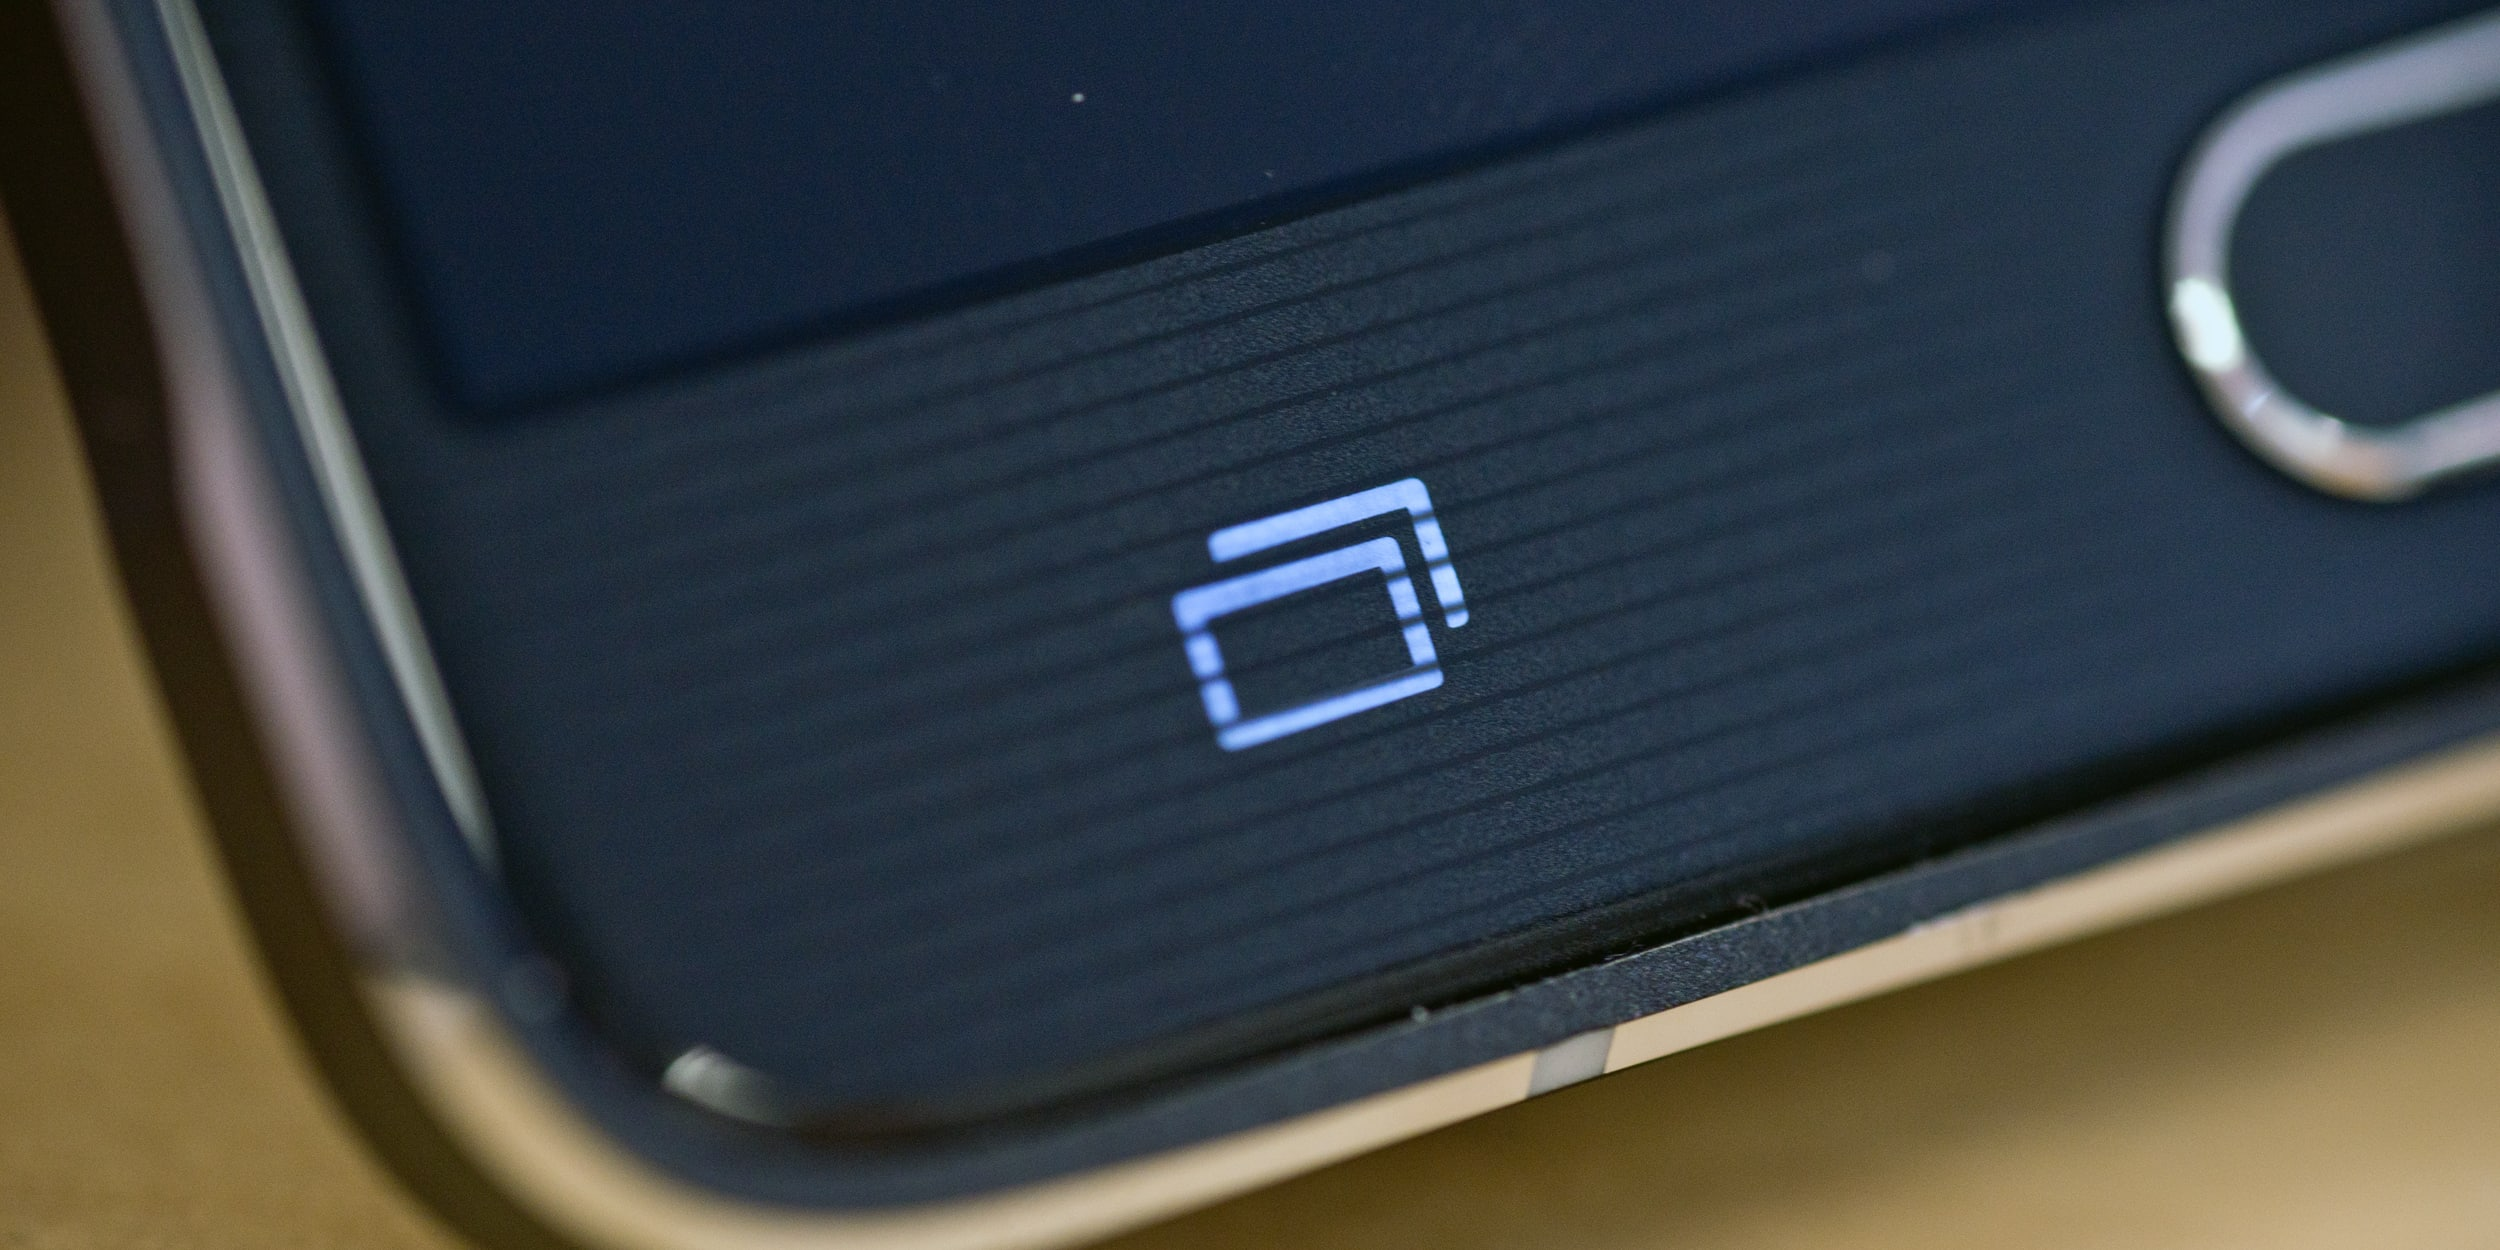 A photograph of the Samsung Galaxy Note 4's capacitive recent apps button.